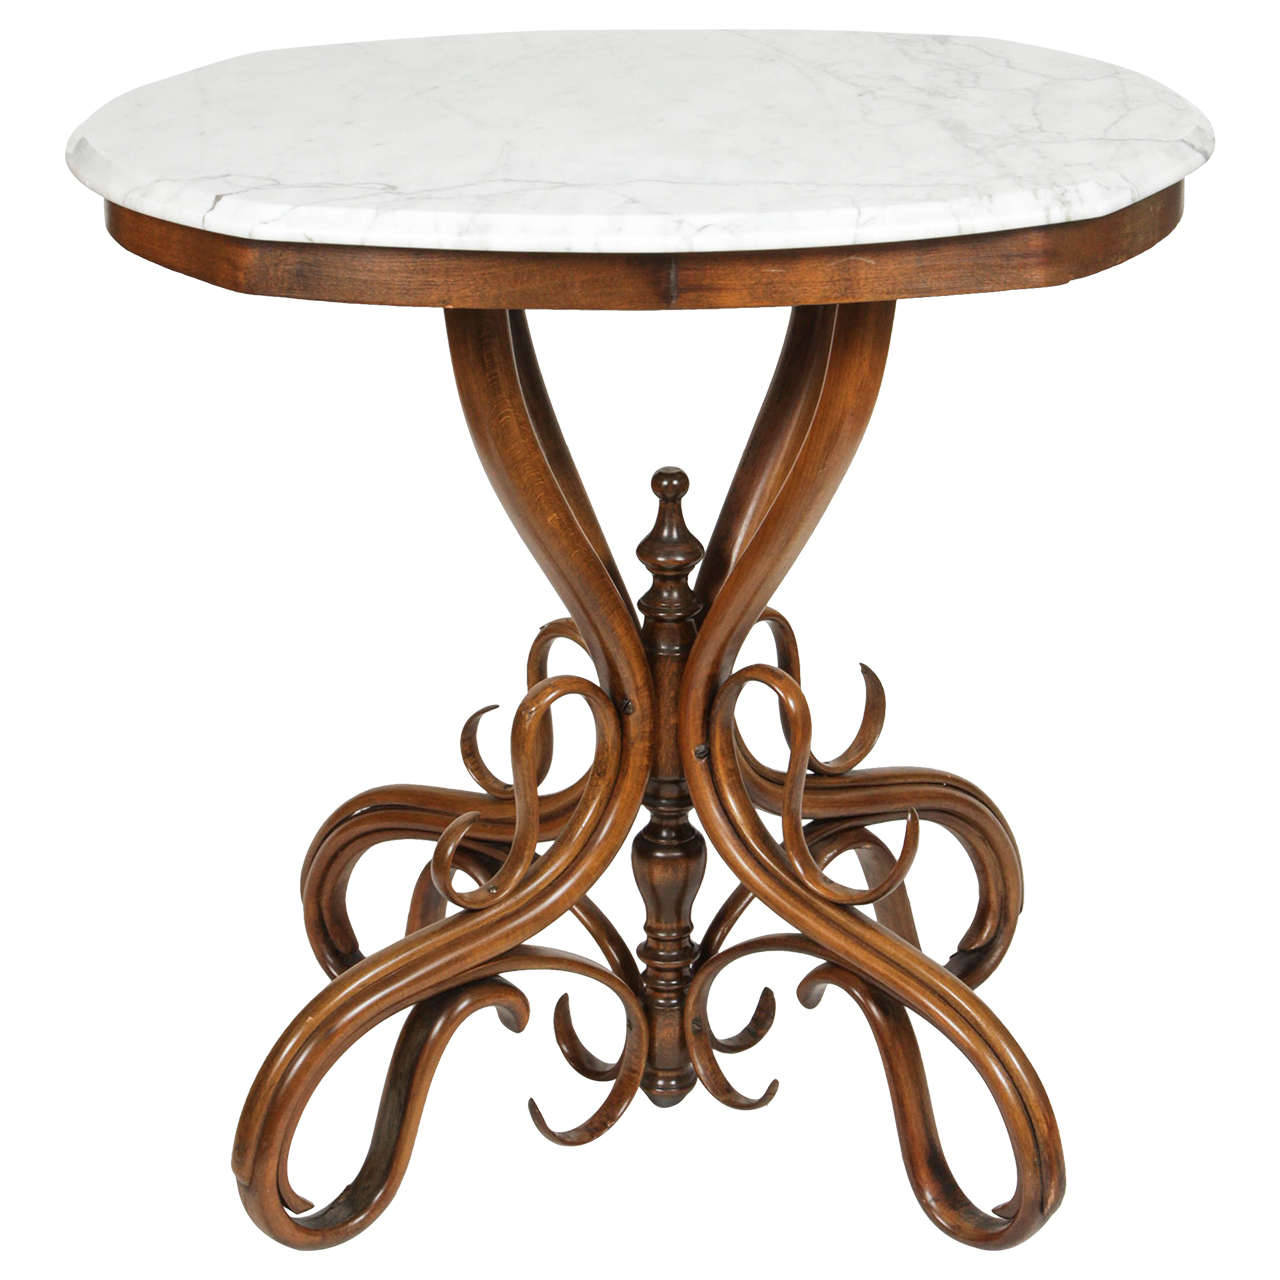 Thonet bentwood occasional table at 1stdibs for Table thonet